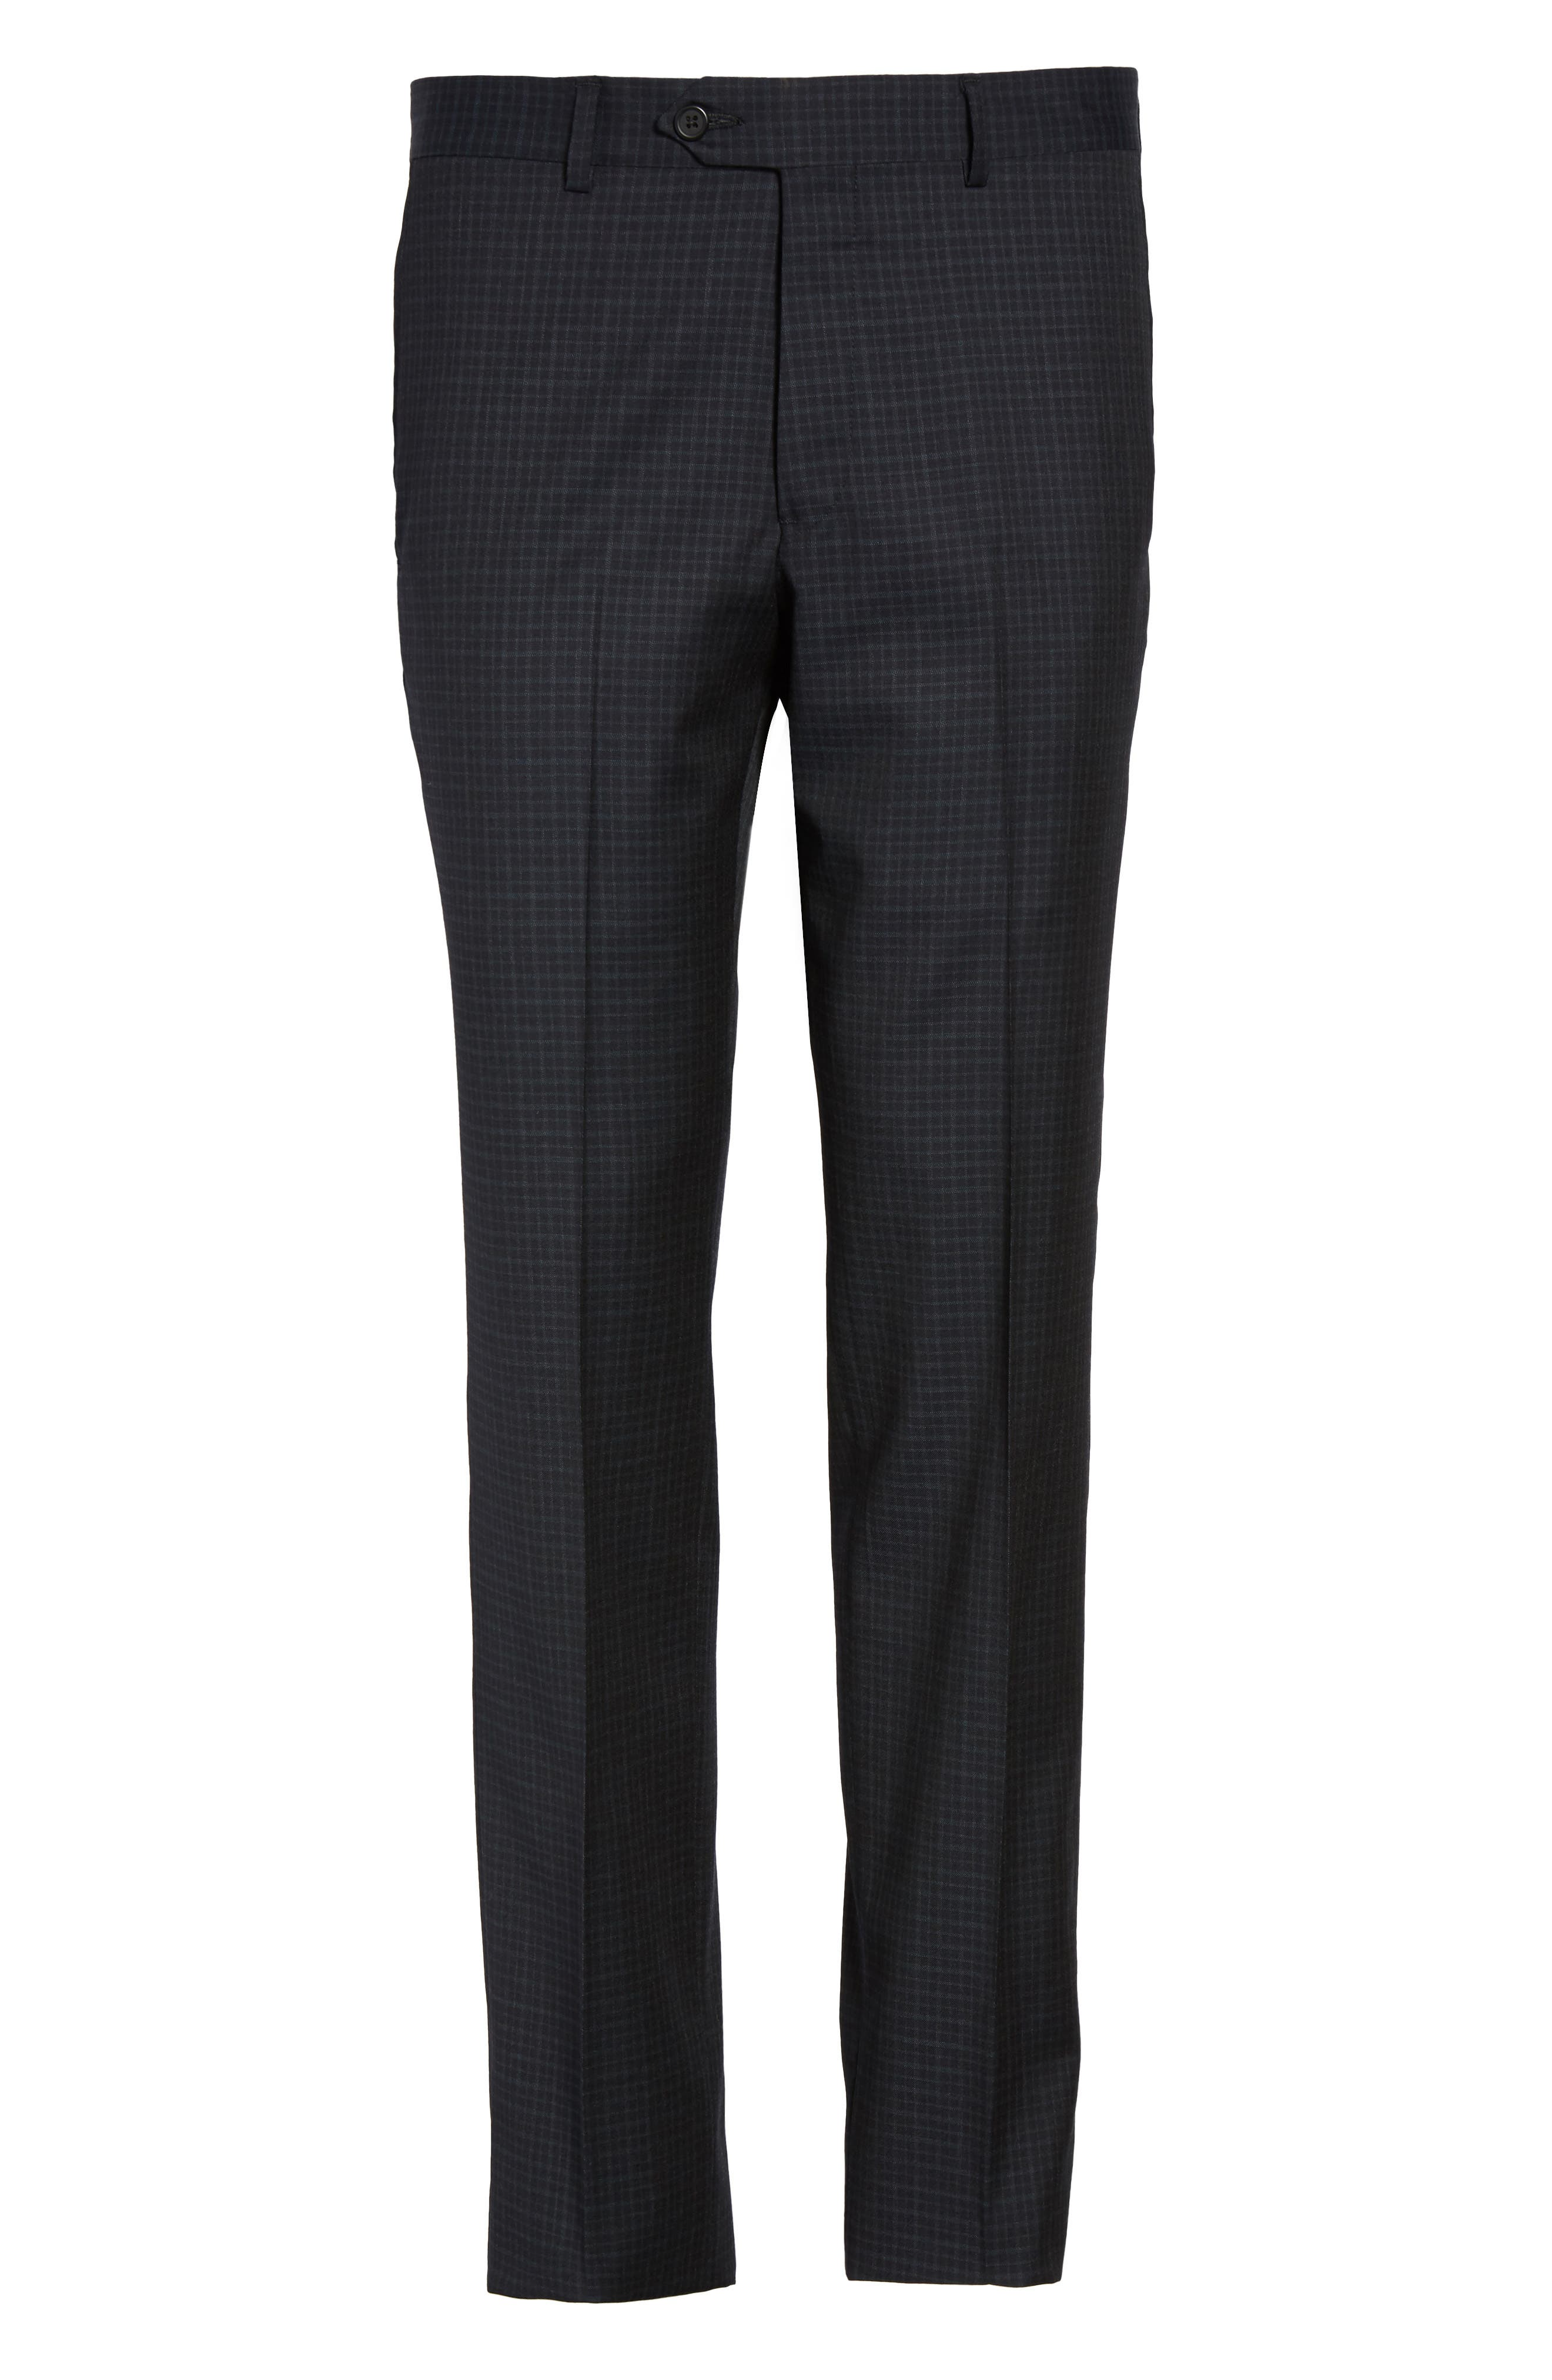 Flat Front Wool Trousers,                             Alternate thumbnail 12, color,